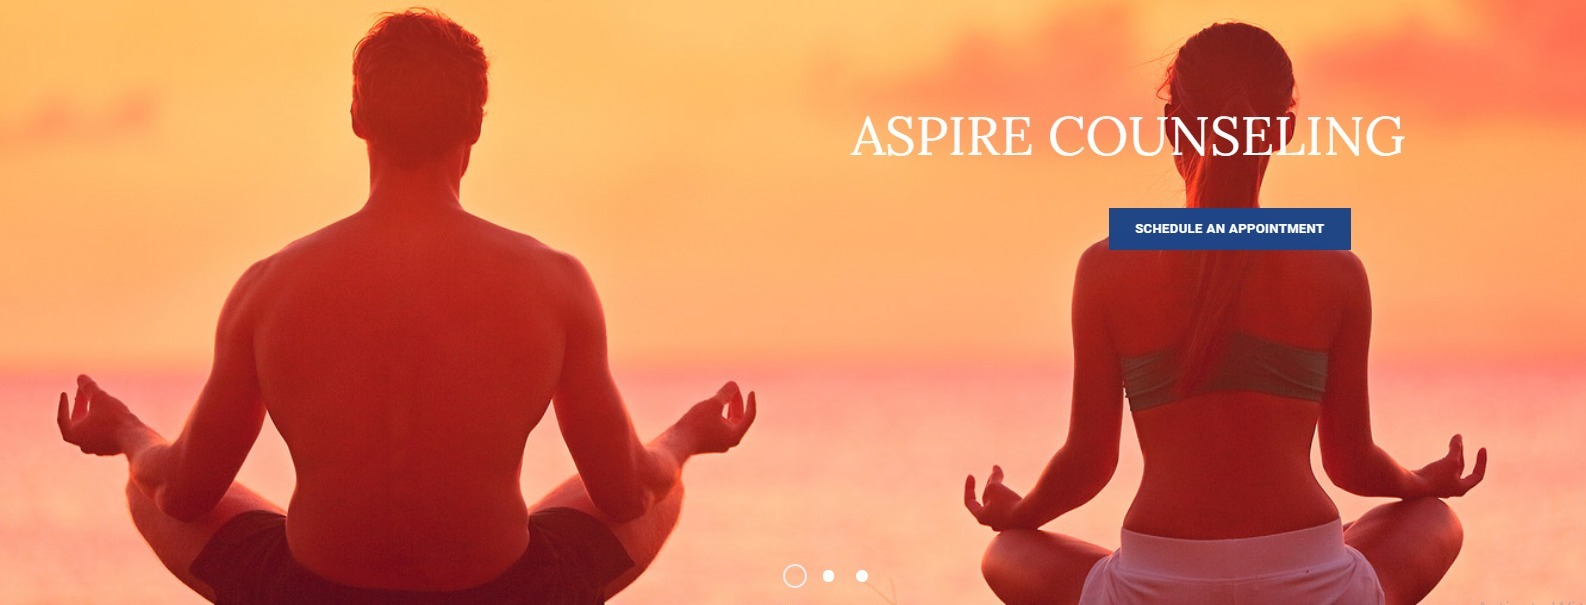 Aspire Counseling Online (@aspirecounselingonline) Cover Image